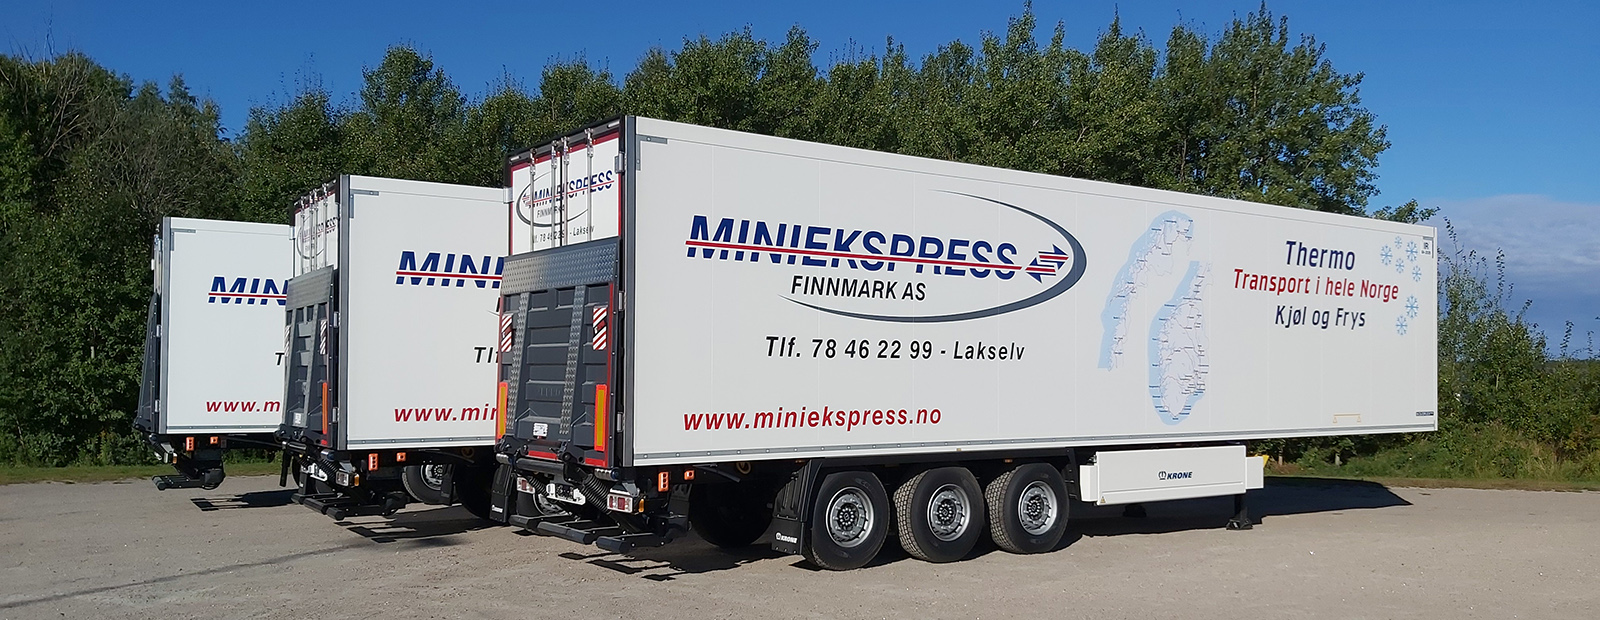 4 new Cool Liners for Miniekspress